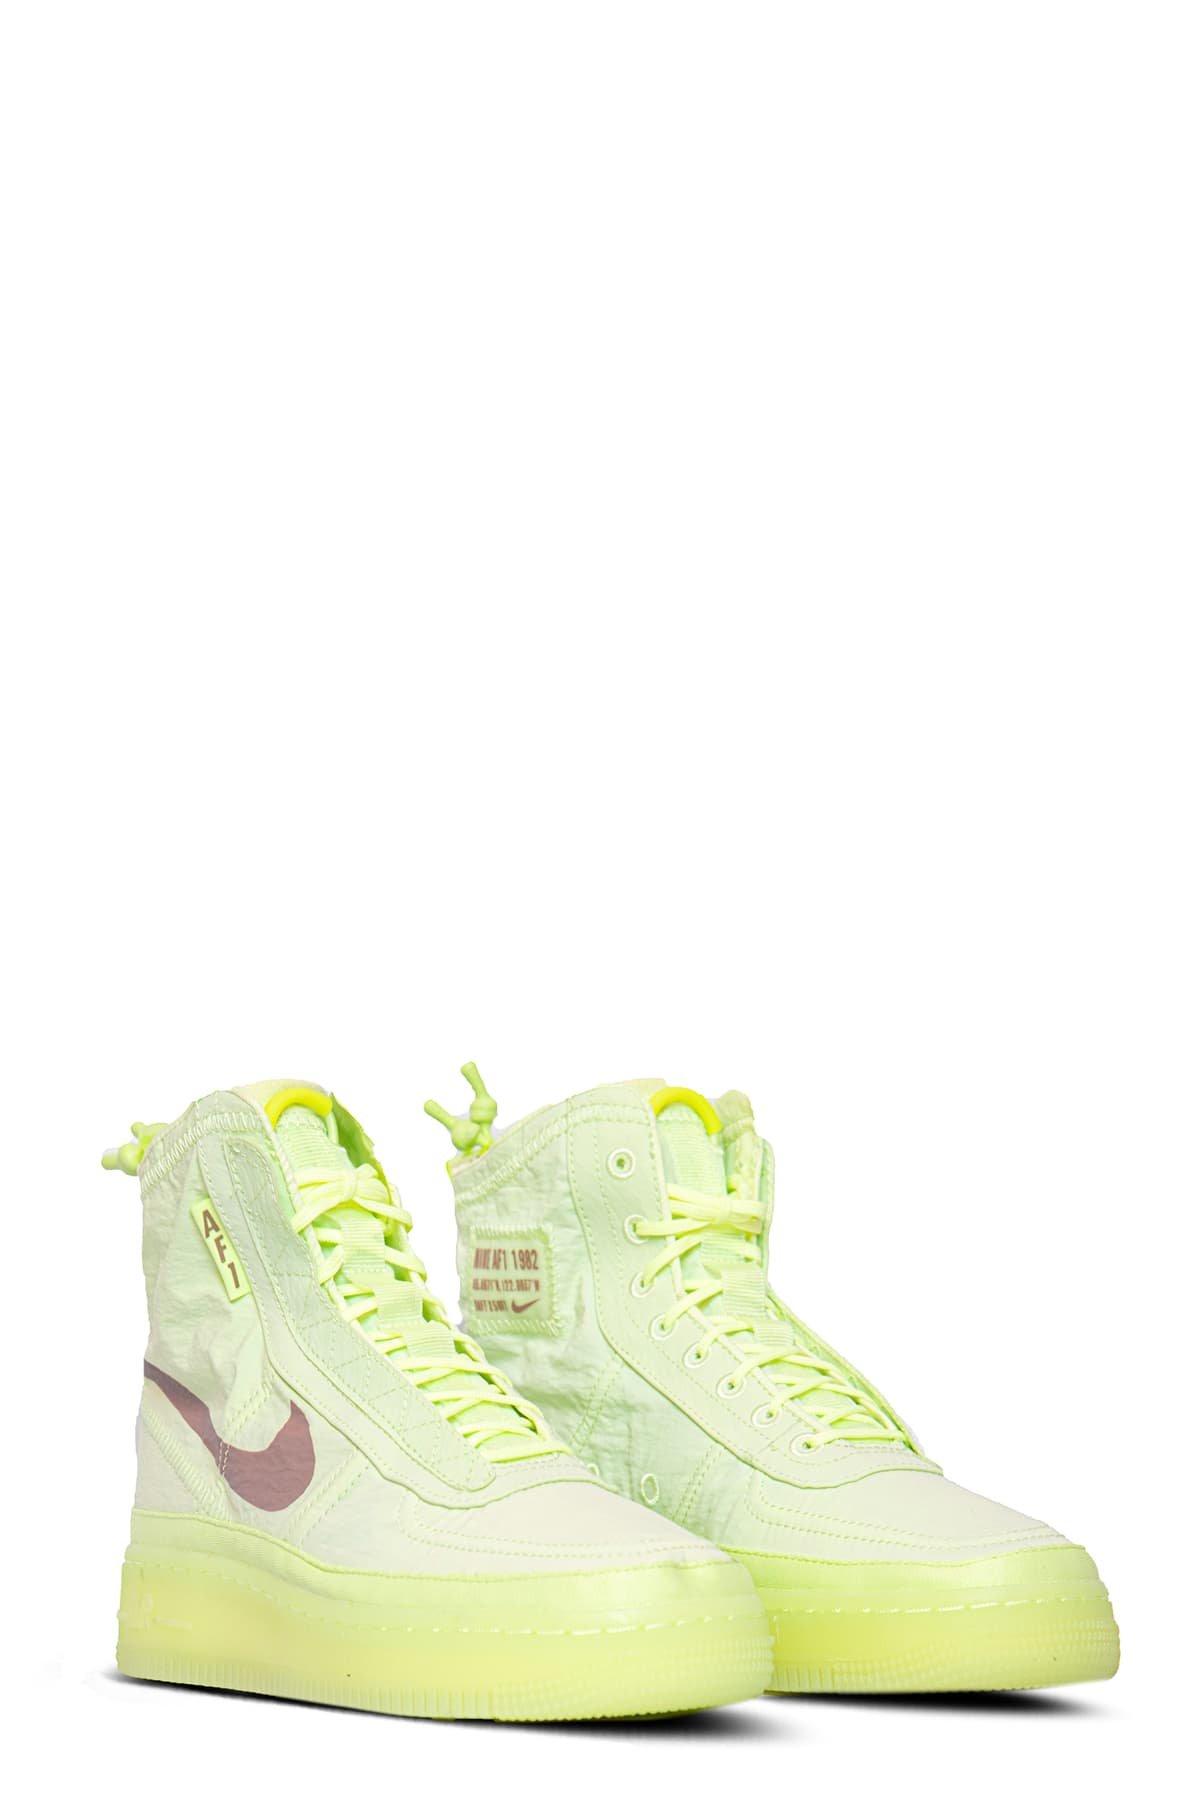 air force 1 flui